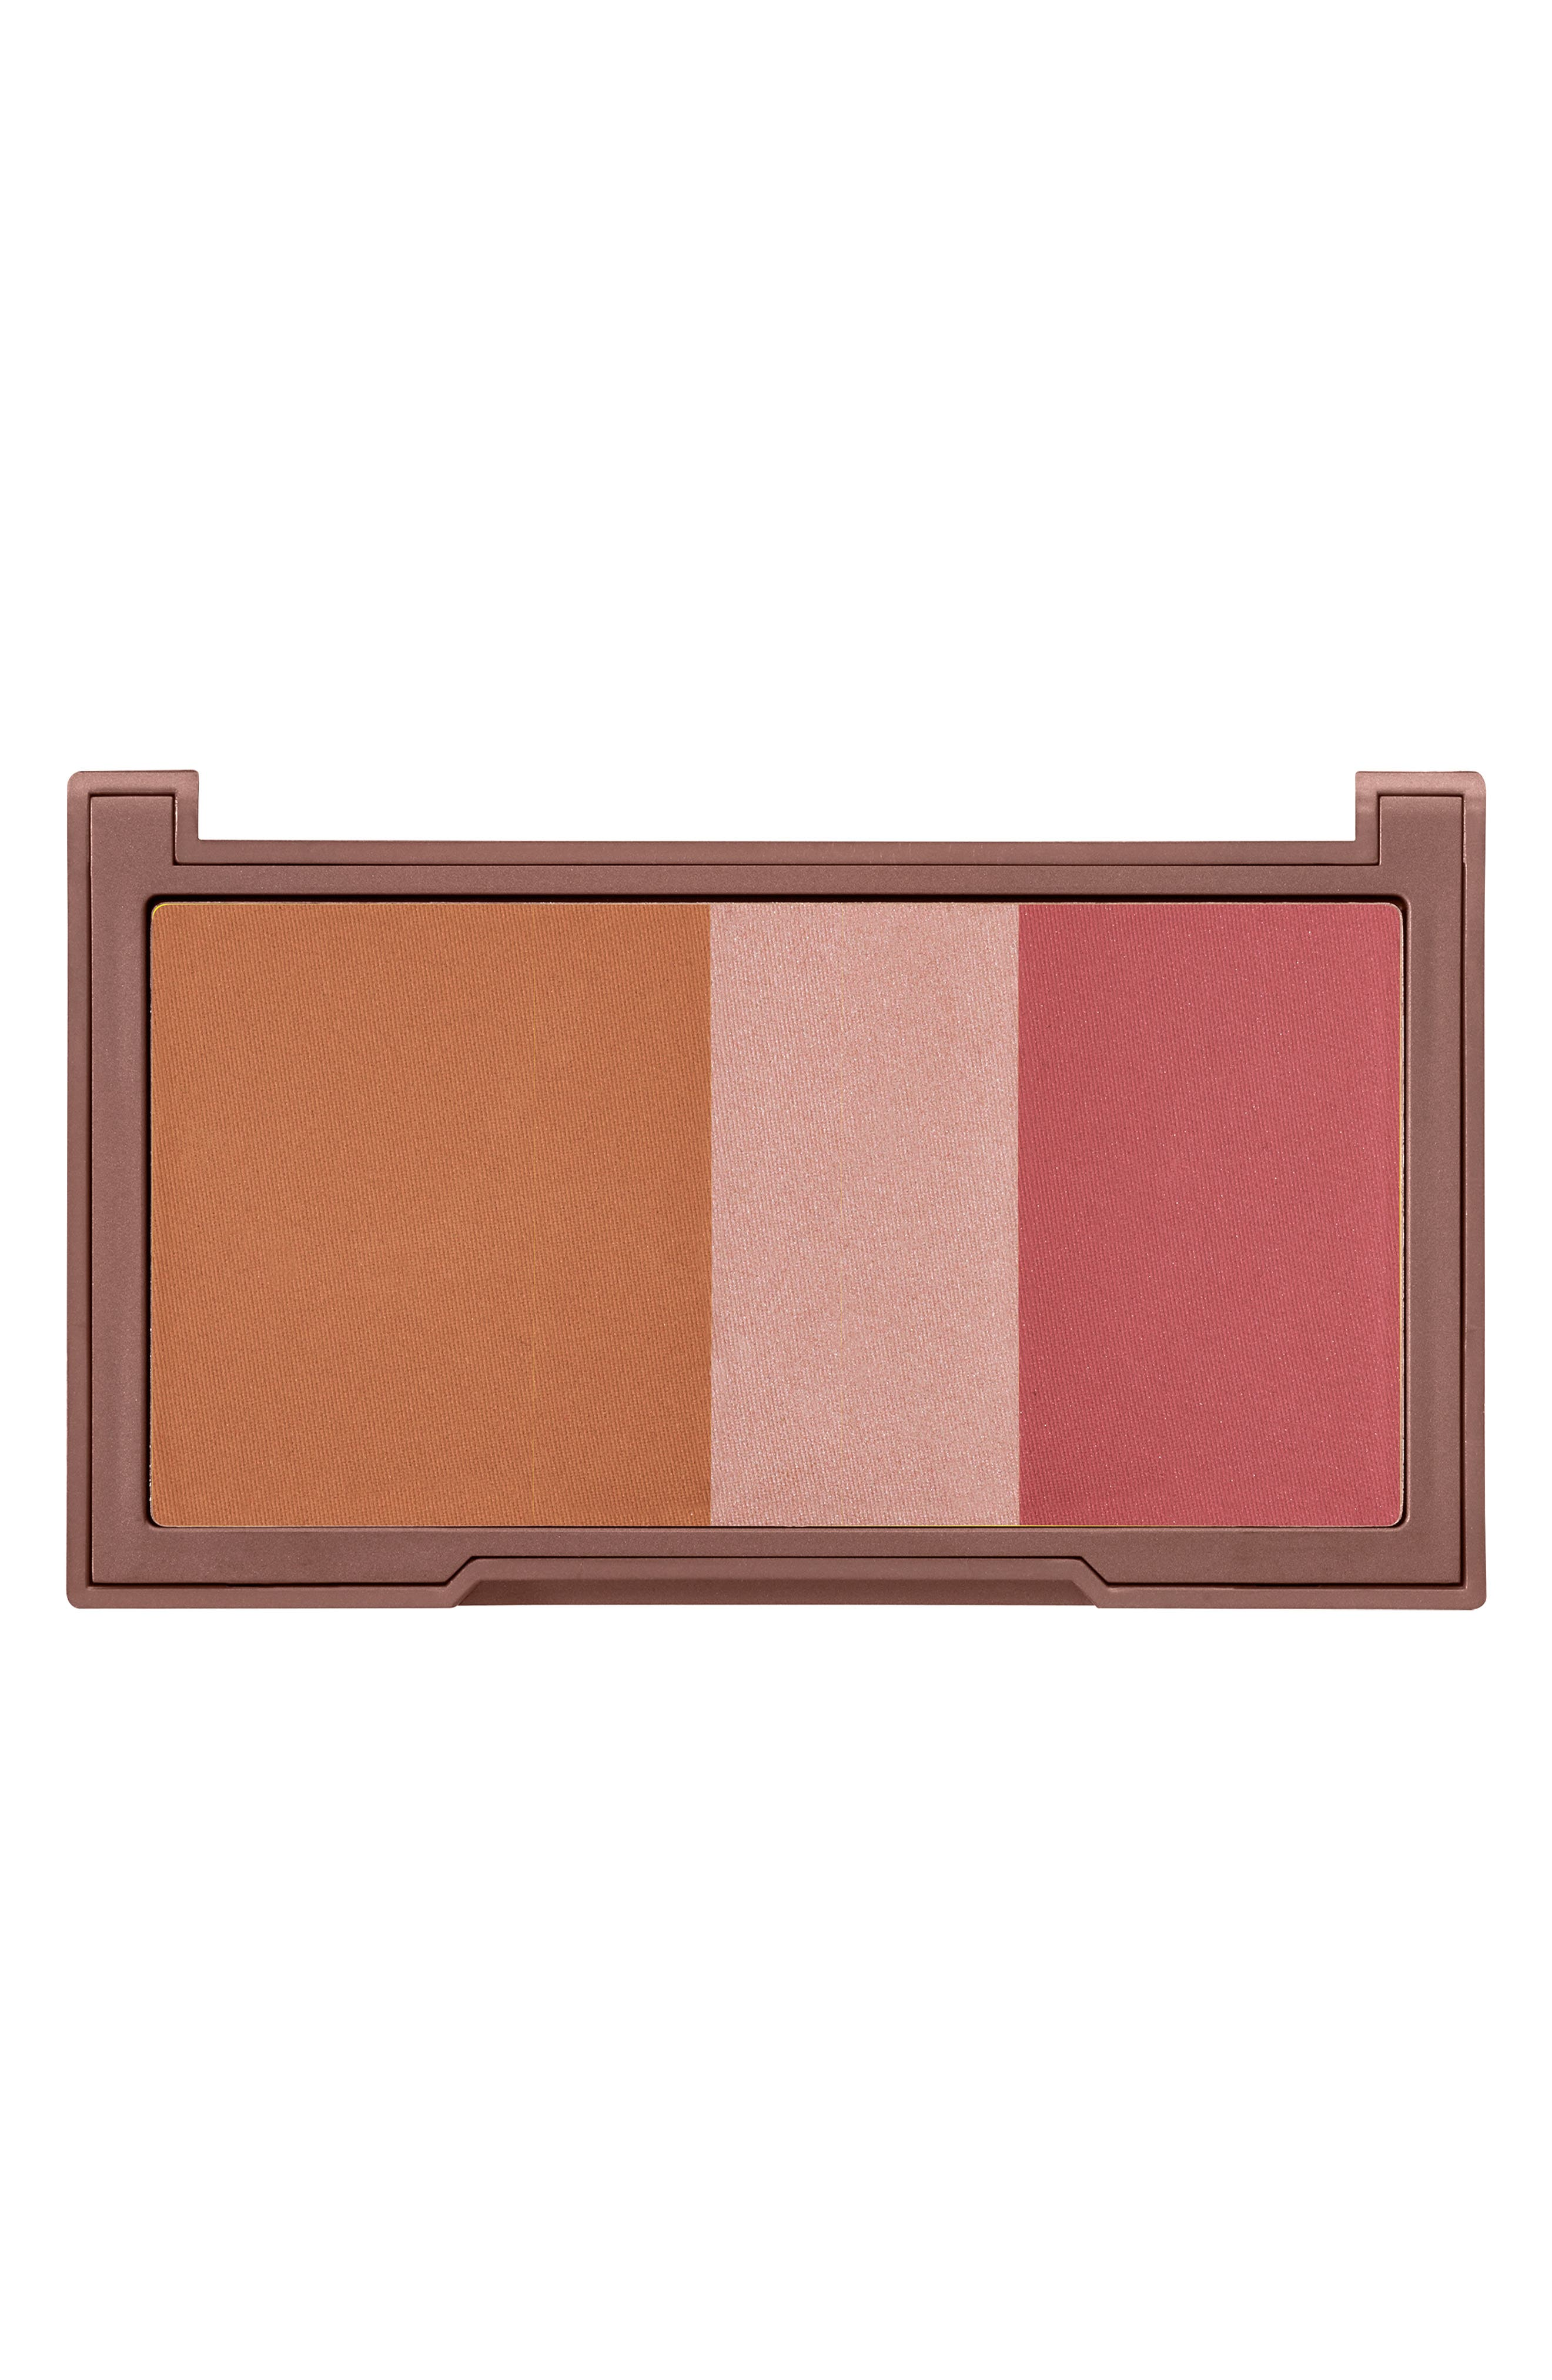 Naked Flushed Bronzer, Highlighter & Blush Palette,                             Alternate thumbnail 4, color,                             NAKED